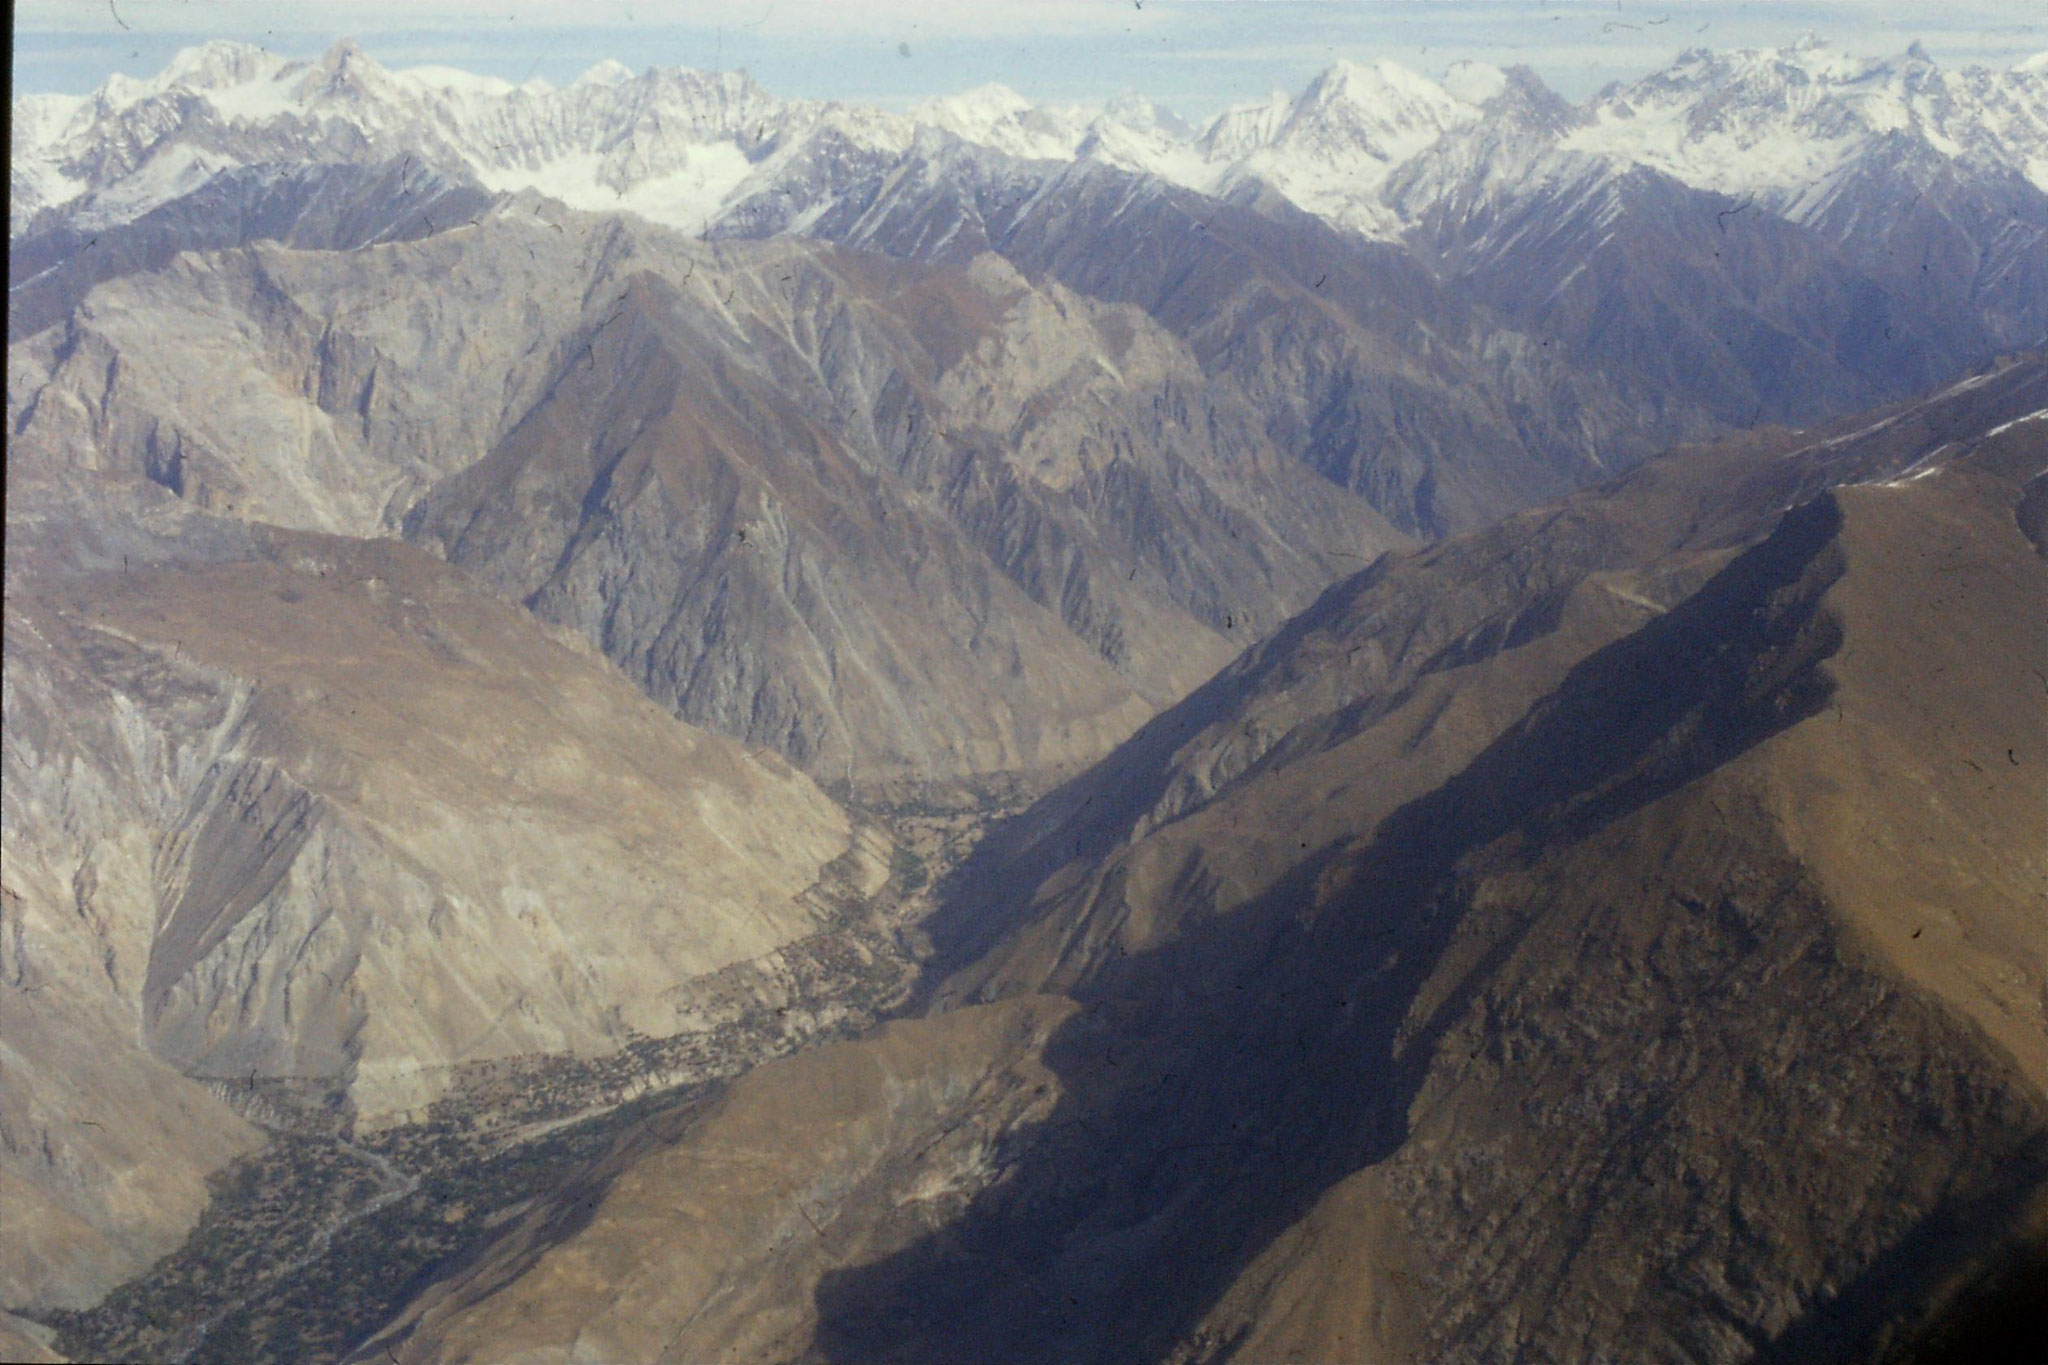 22/10/1989: 19: mountains at bend of Indus